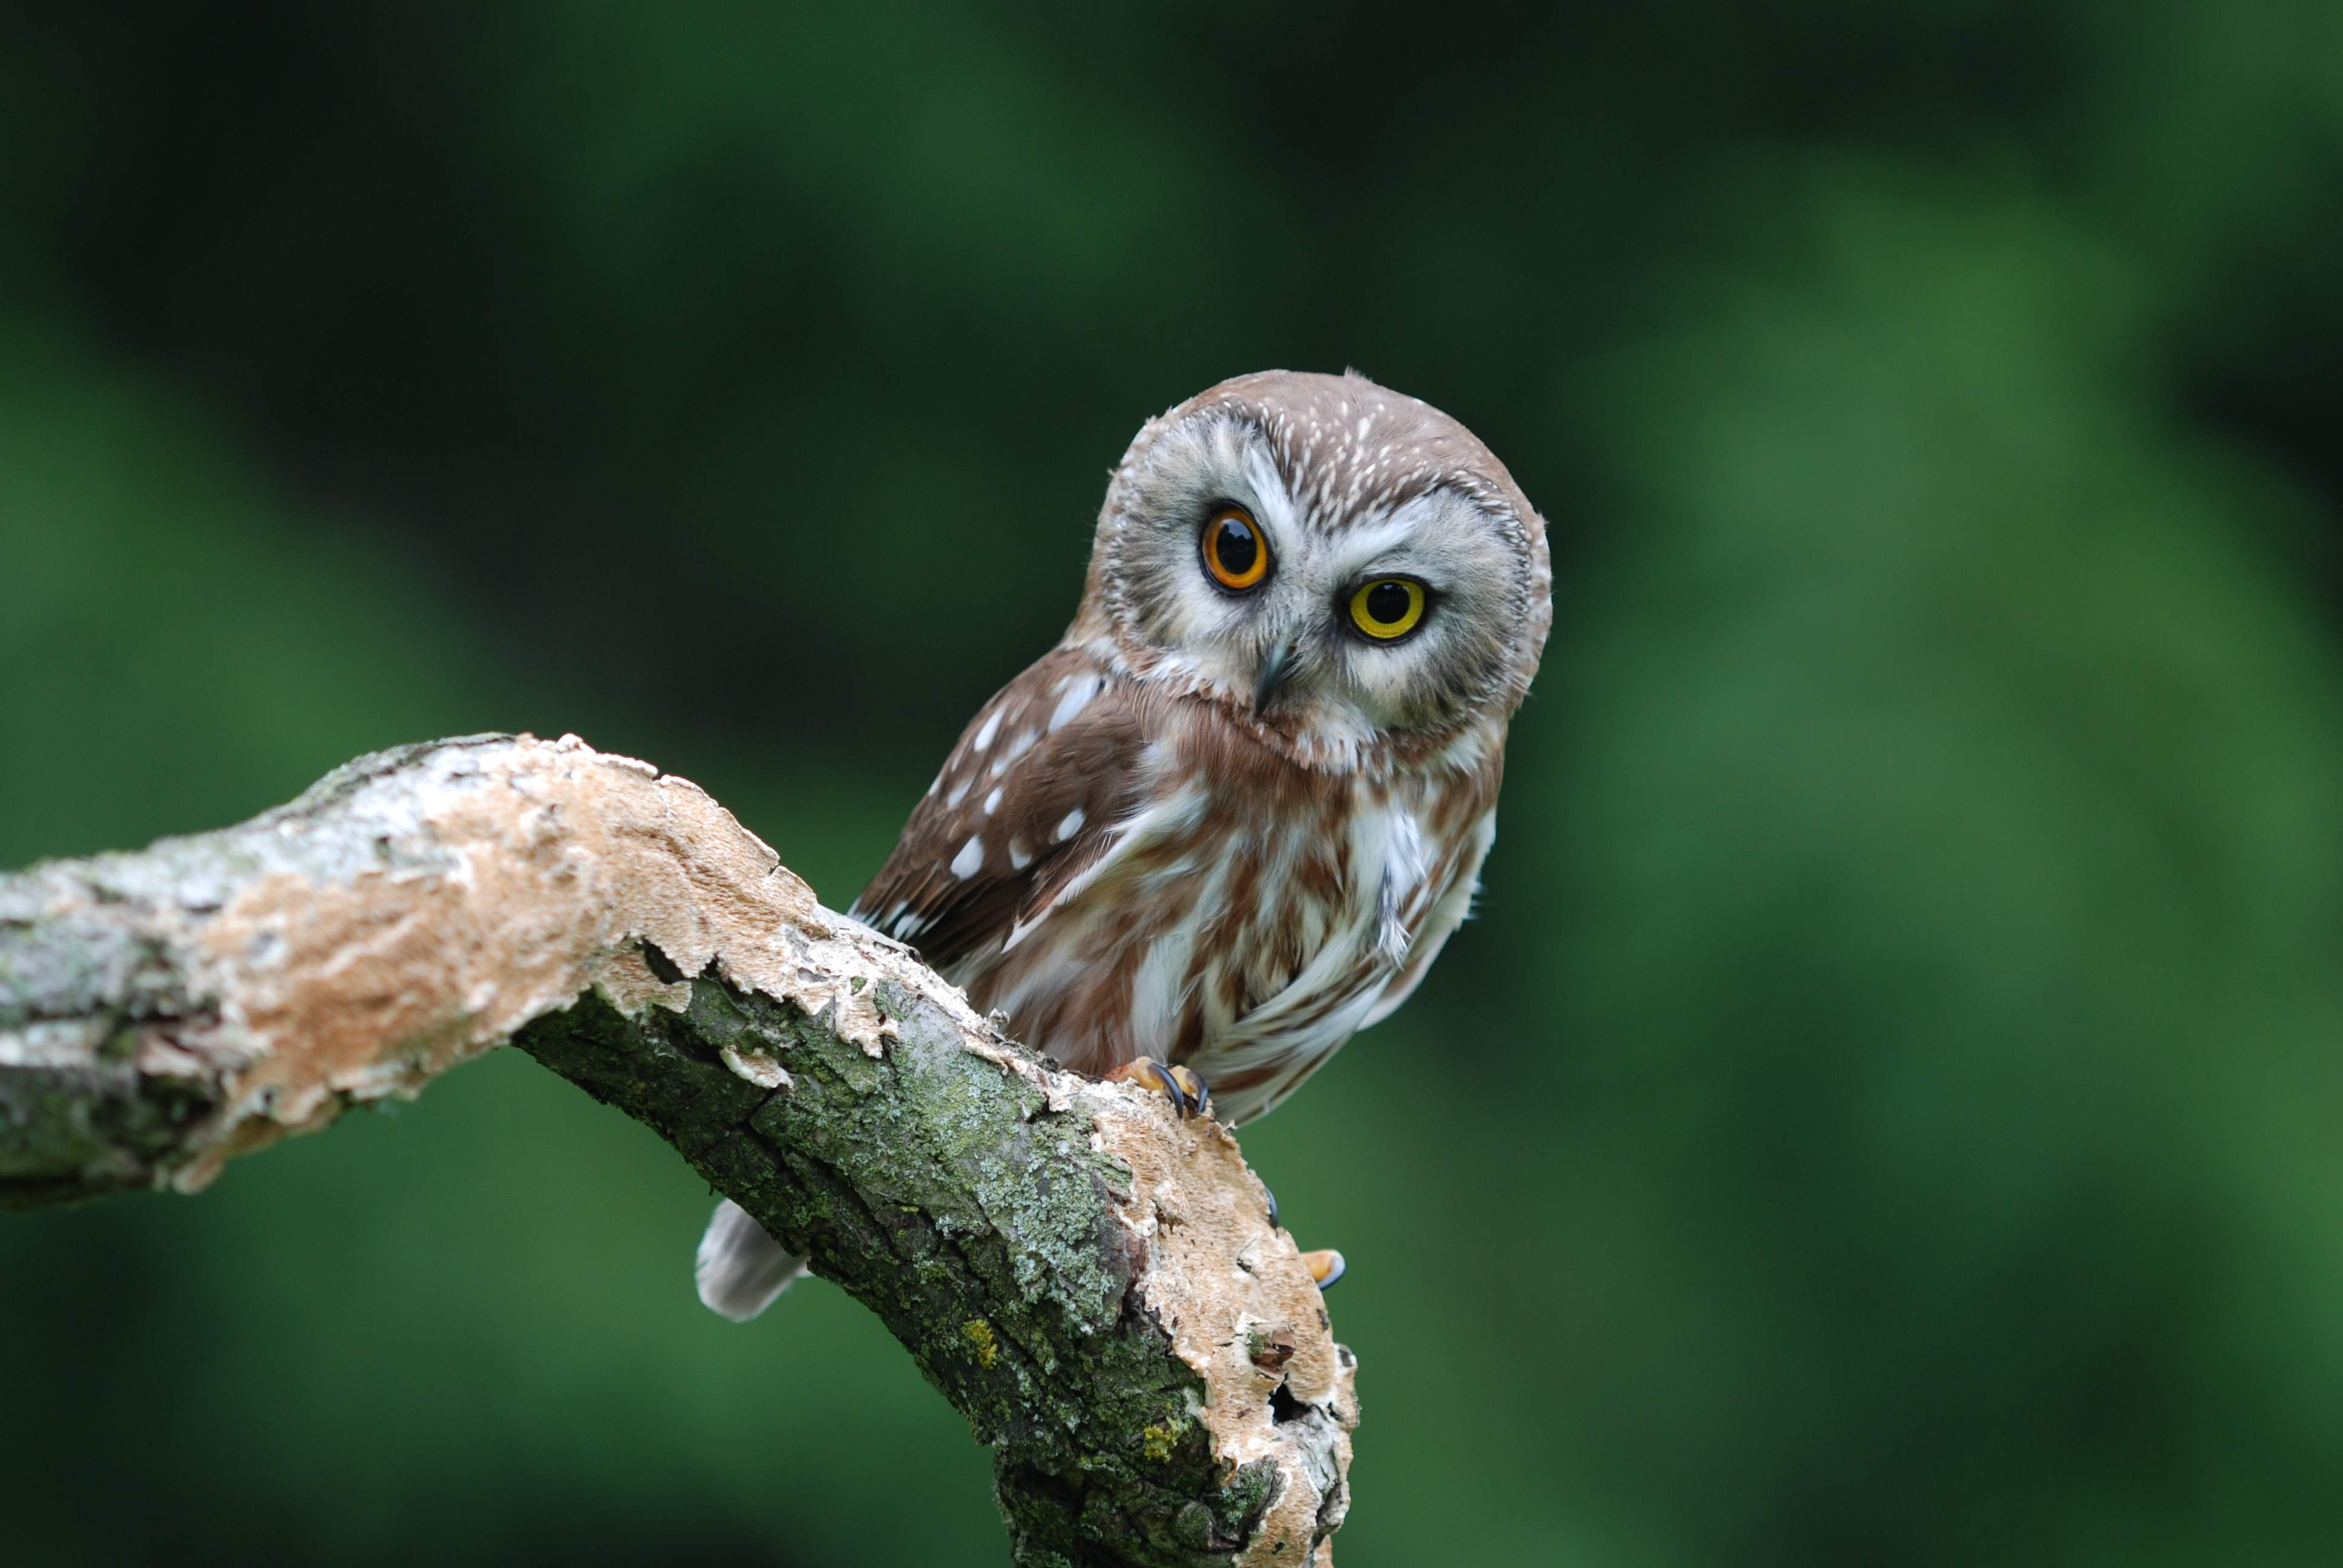 Owl on branch at willows, uk